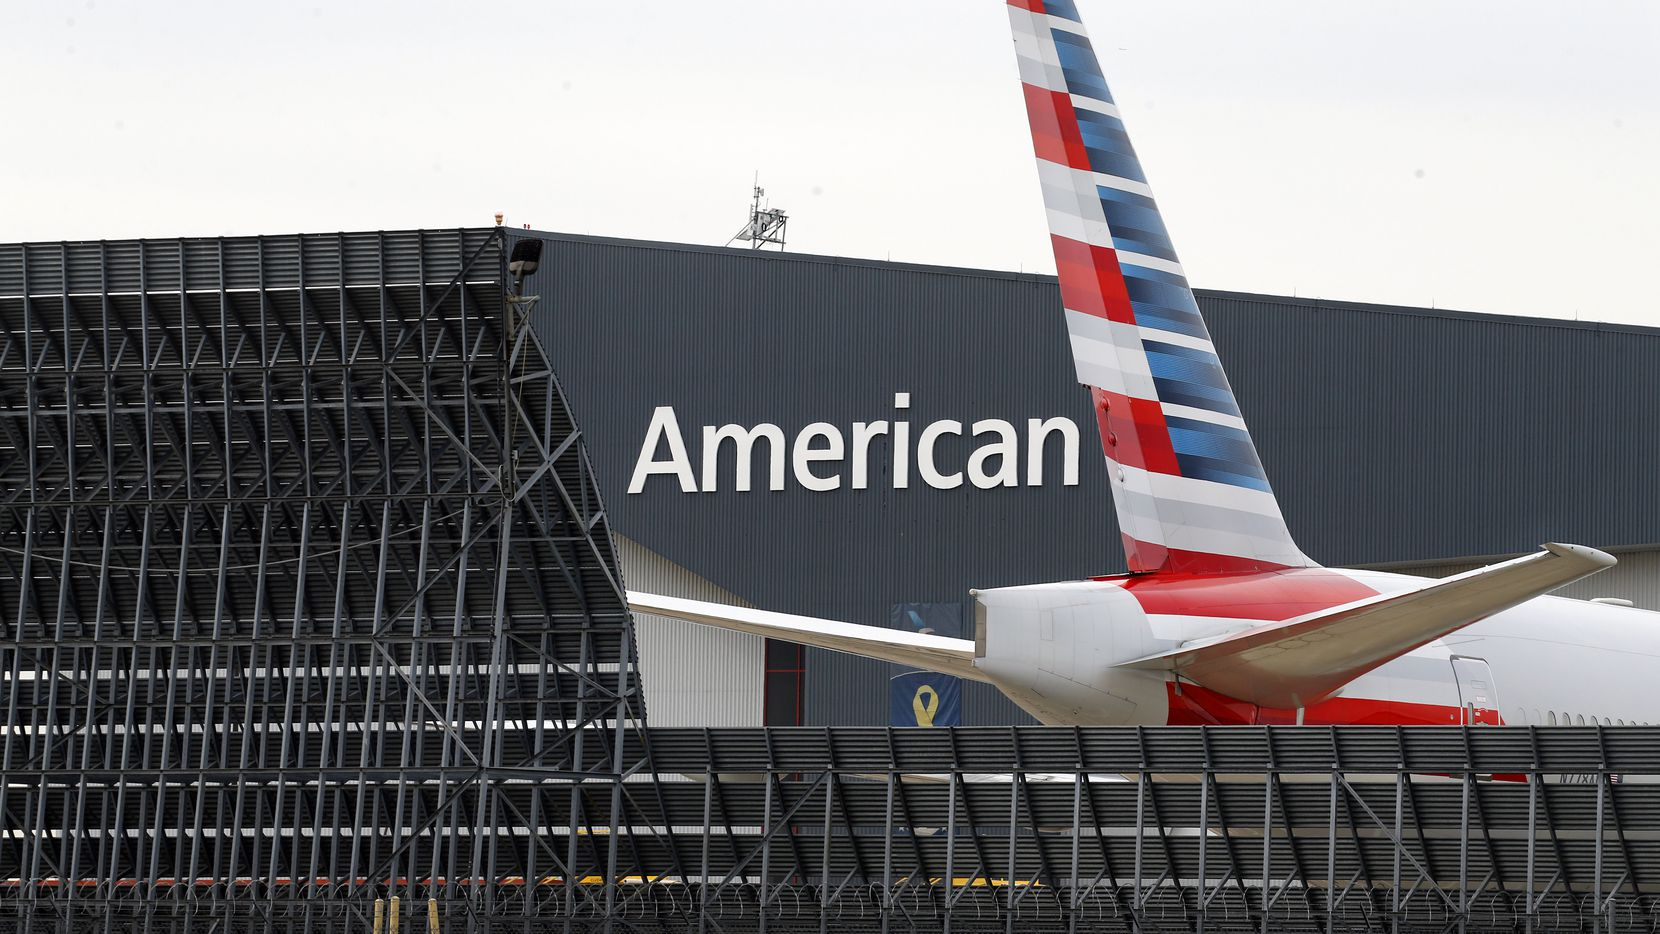 An American Airlines aircraft sits outside maintenance Hangar 5 at Dallas-Fort Worth International Airport, Tuesday, January 21, 2020. (Tom Fox/The Dallas Morning News)